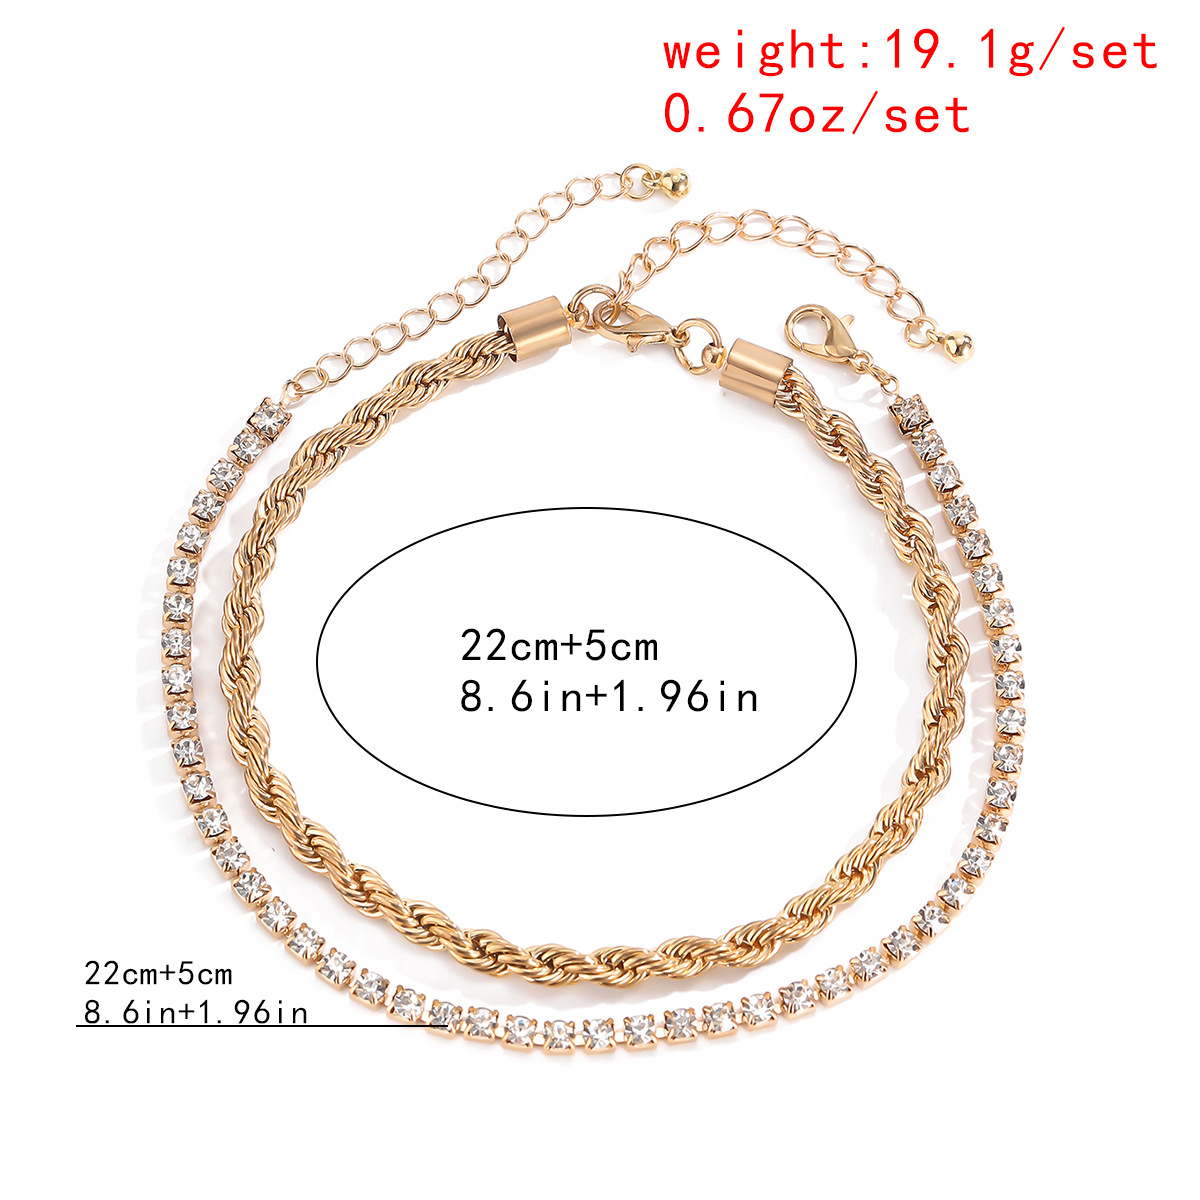 Minimalist punk multi-layered anklets set with diamonds BABY BABE letter pendants anklets set  for women